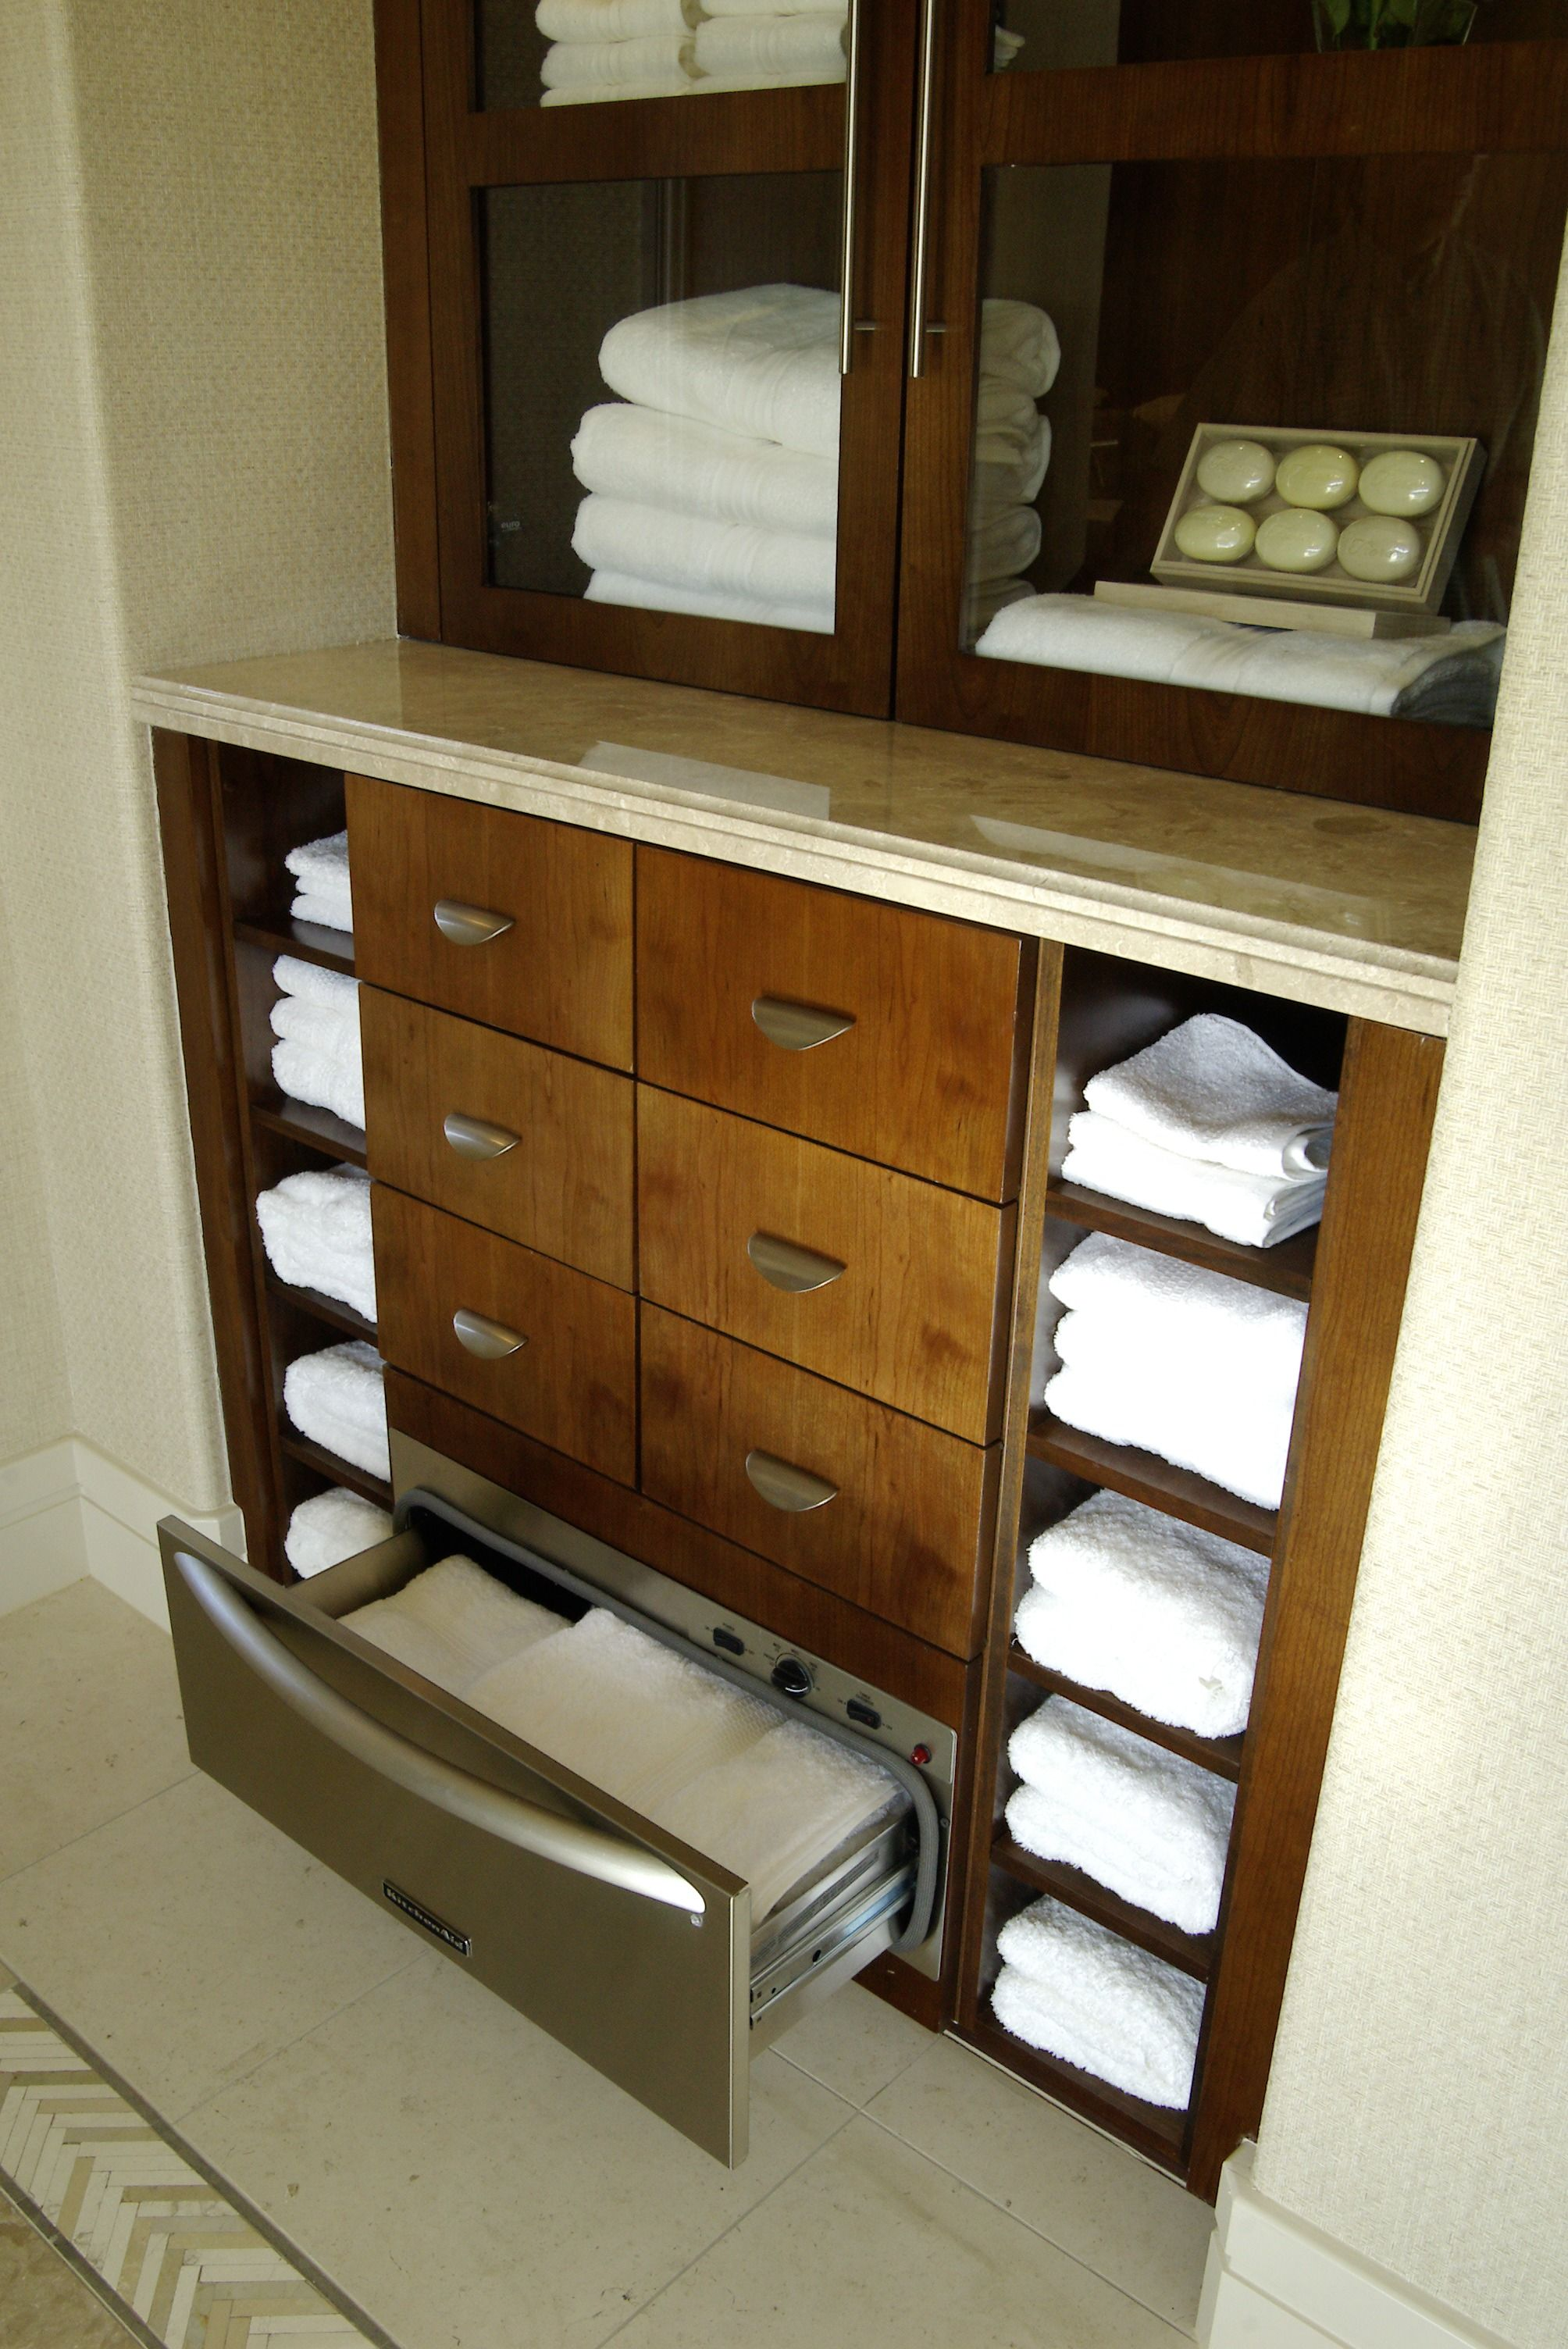 Good Storage Is A Must When It Comes To Master Baths And This One Certainly Has It With Multiple Open Shelves And Towel Warmer Drawer Loft Decor Warming Drawer